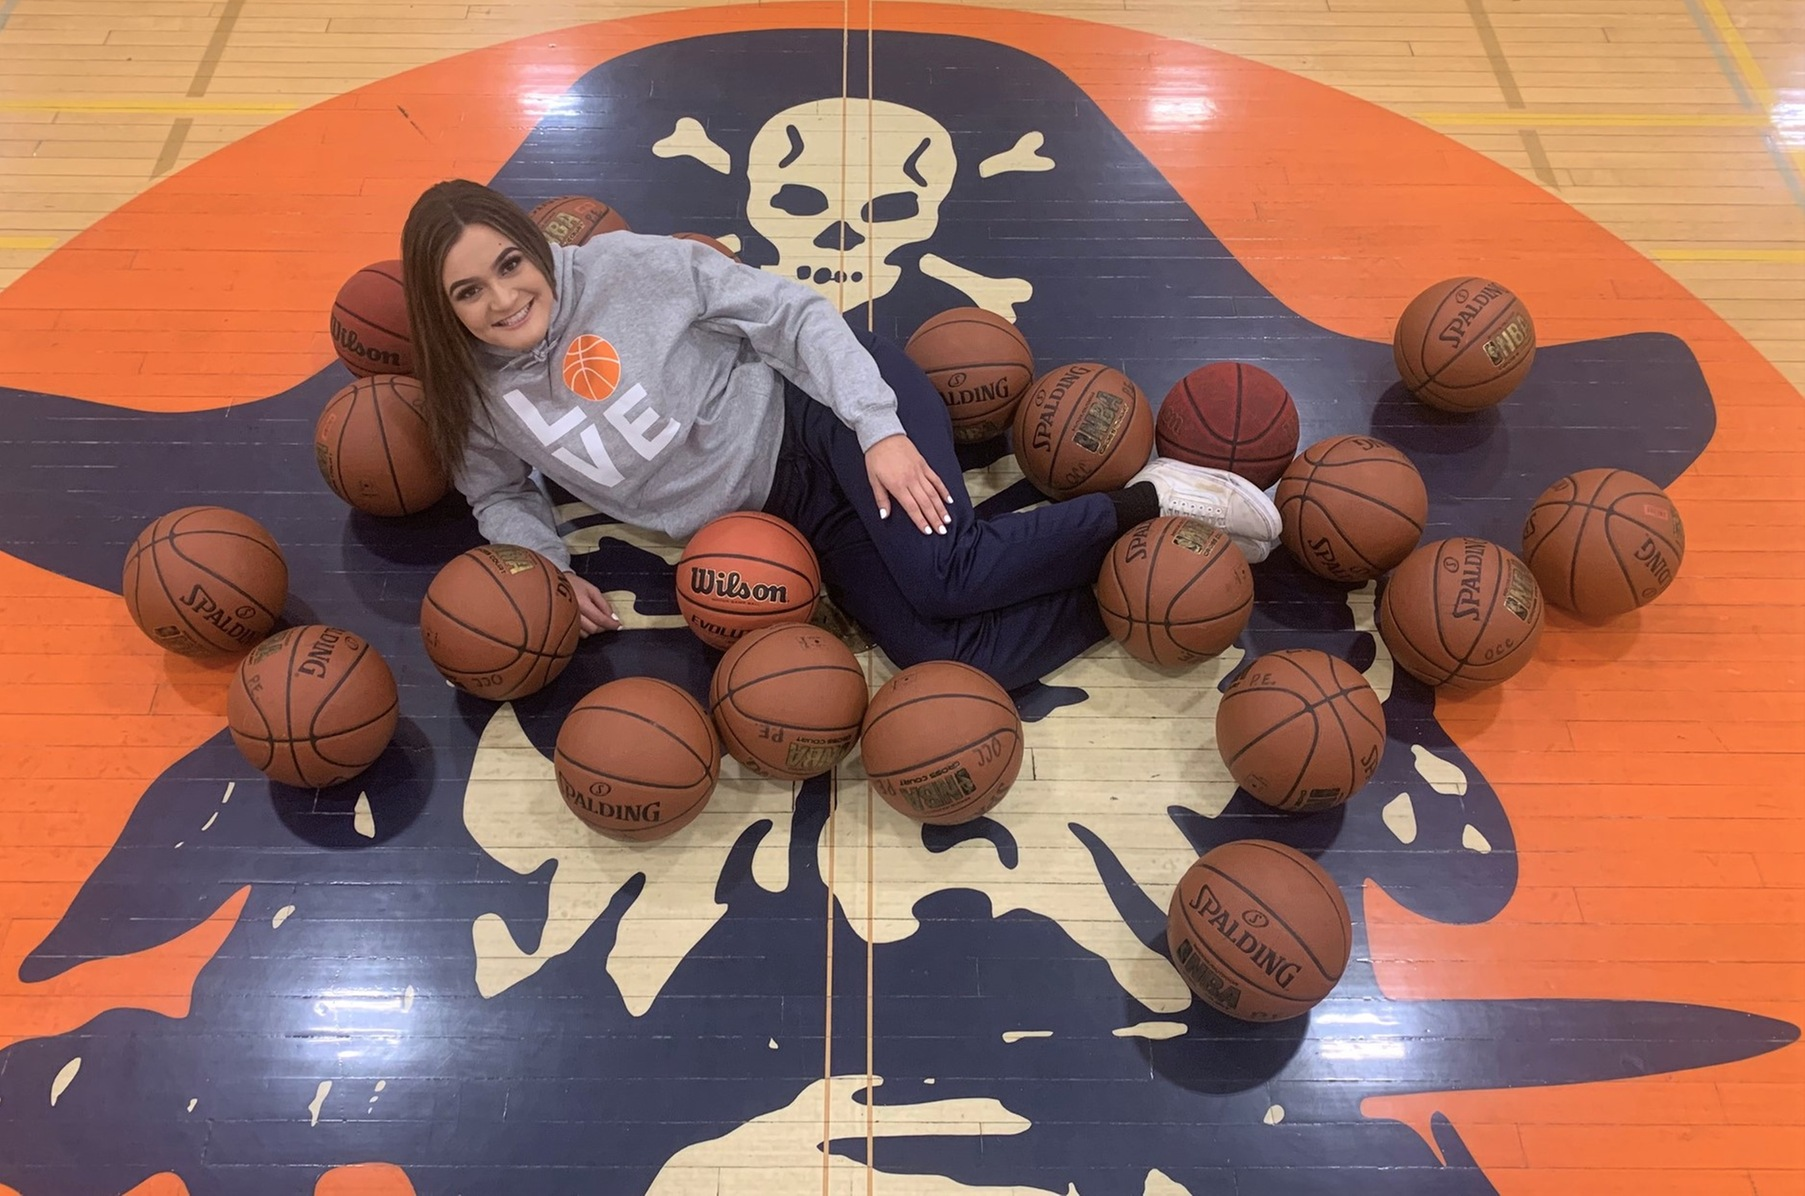 Adame finds love of basketball at Orange Coast